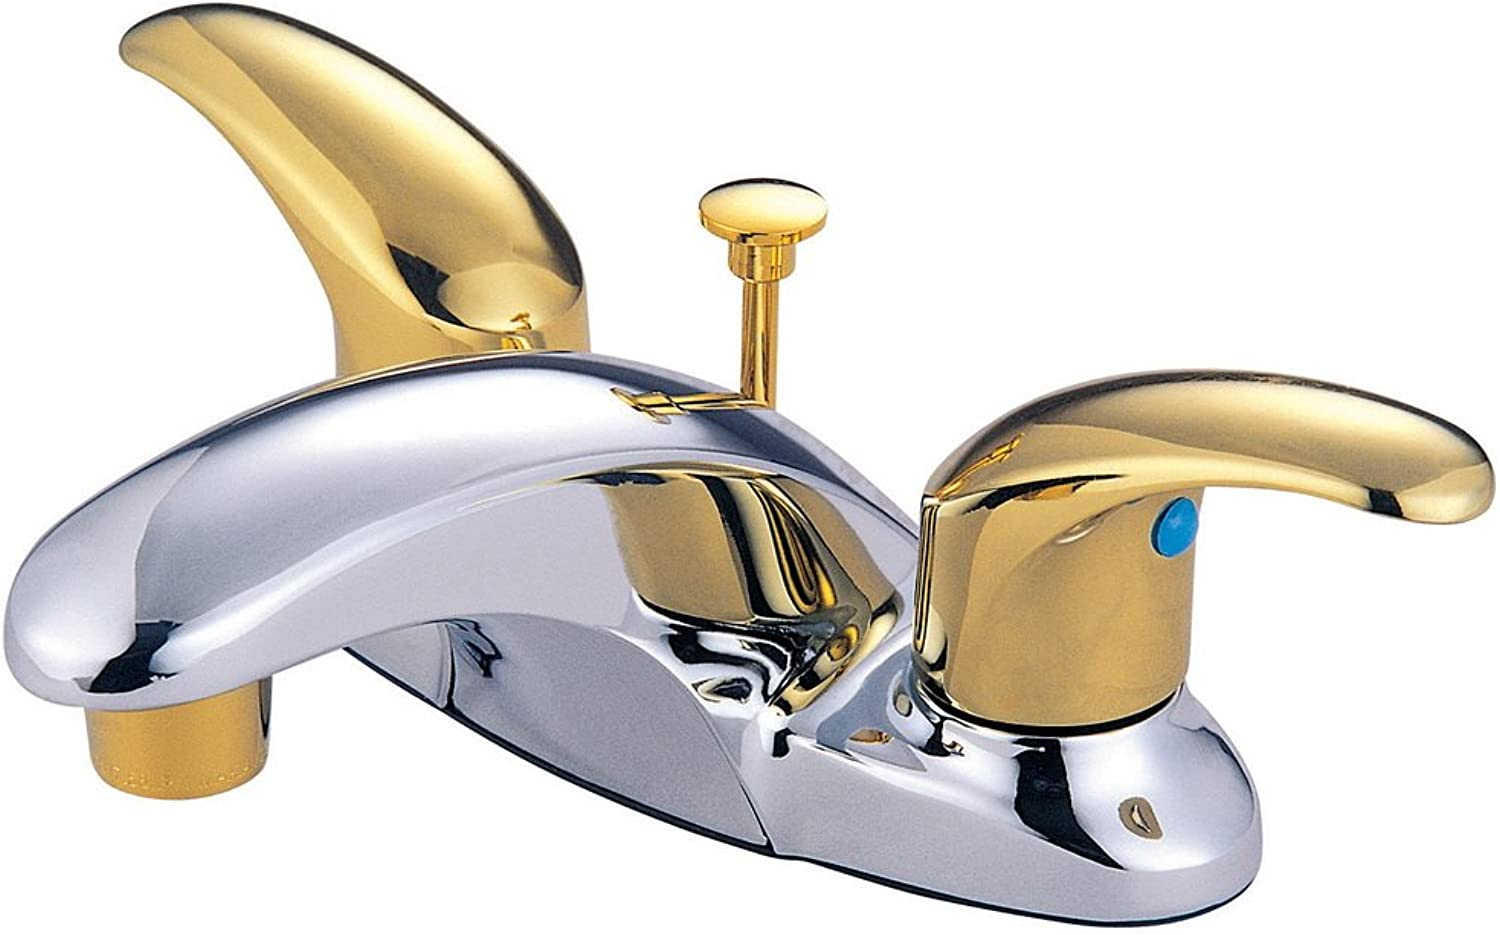 Kingston Brass KB6624LL Legacy 4-Inch Centerset Lavatory Faucet with Pop Up, Polished Chrome and Polished Brass